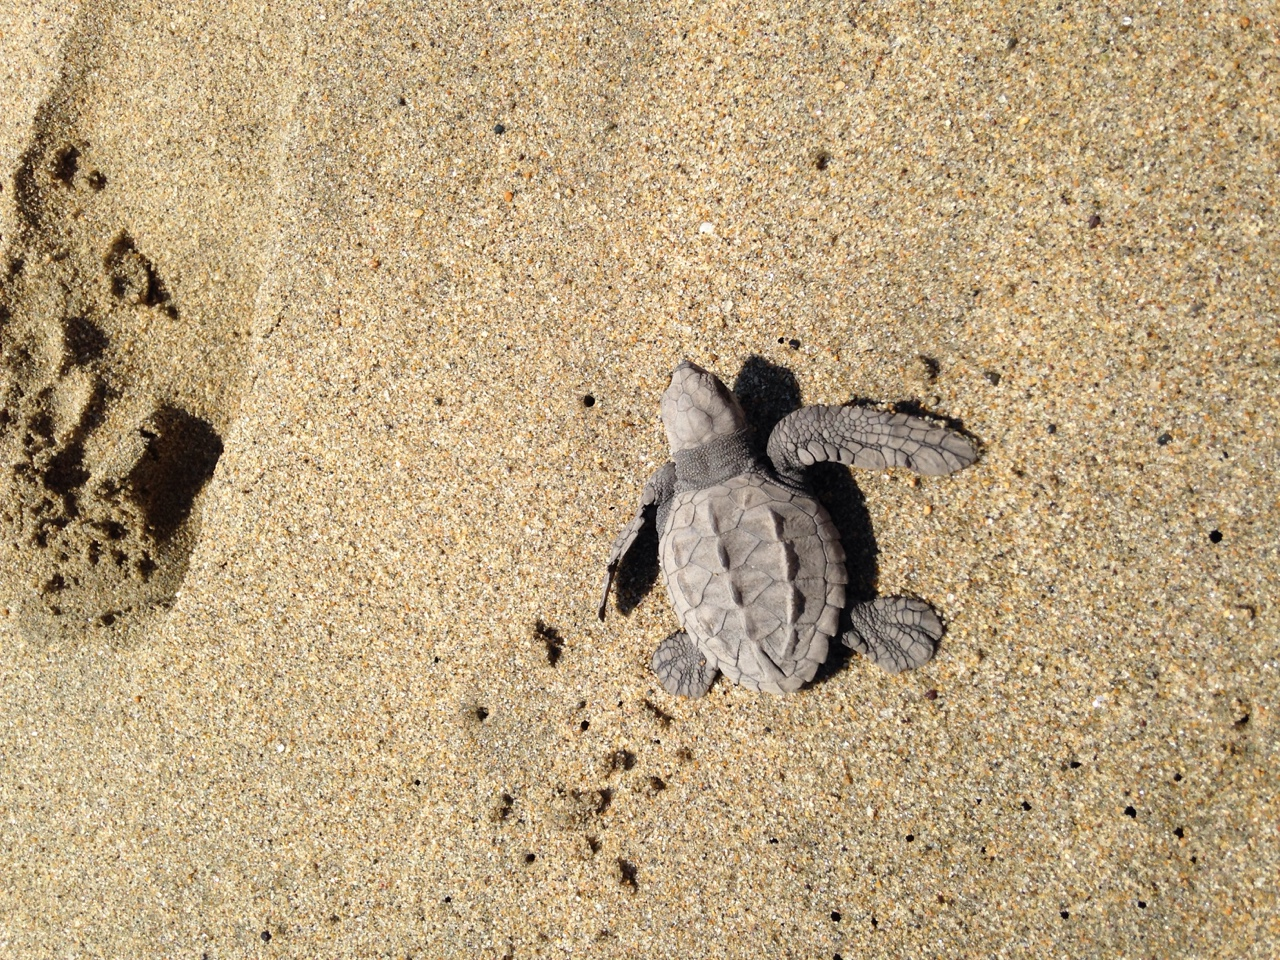 Baby Olive Ridley sea turtle taking its first walk